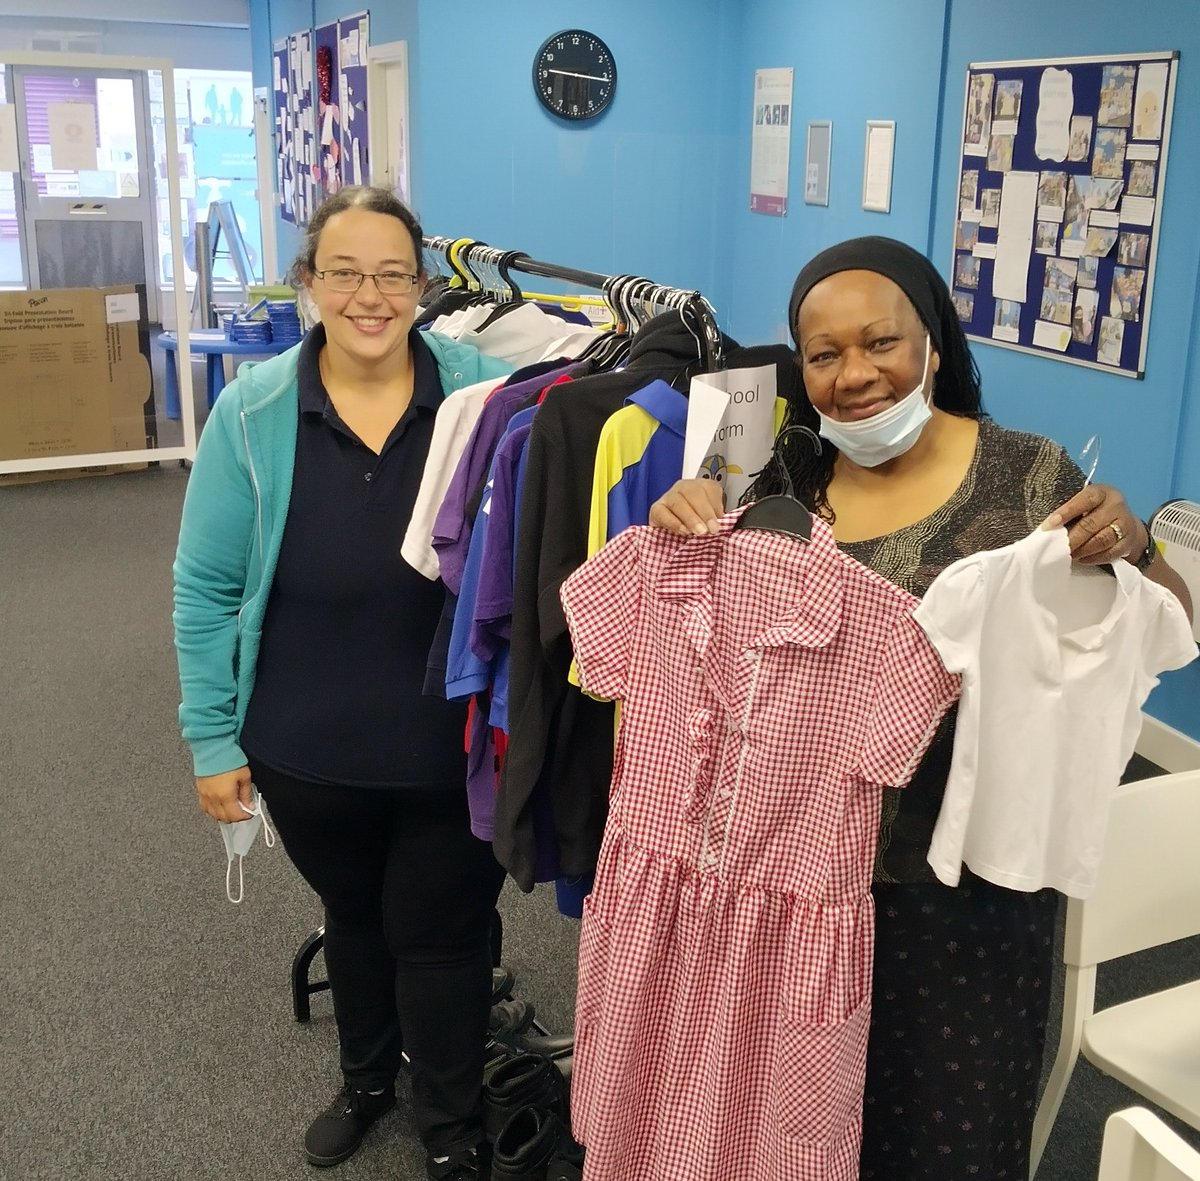 As part of our school uniform swap, we reached out to local organisations, including Millie's Foundation, to offer our support. Millie stopped by our community hub today to collect some clothing, which will be used by families that the charity supports. #PassItForward